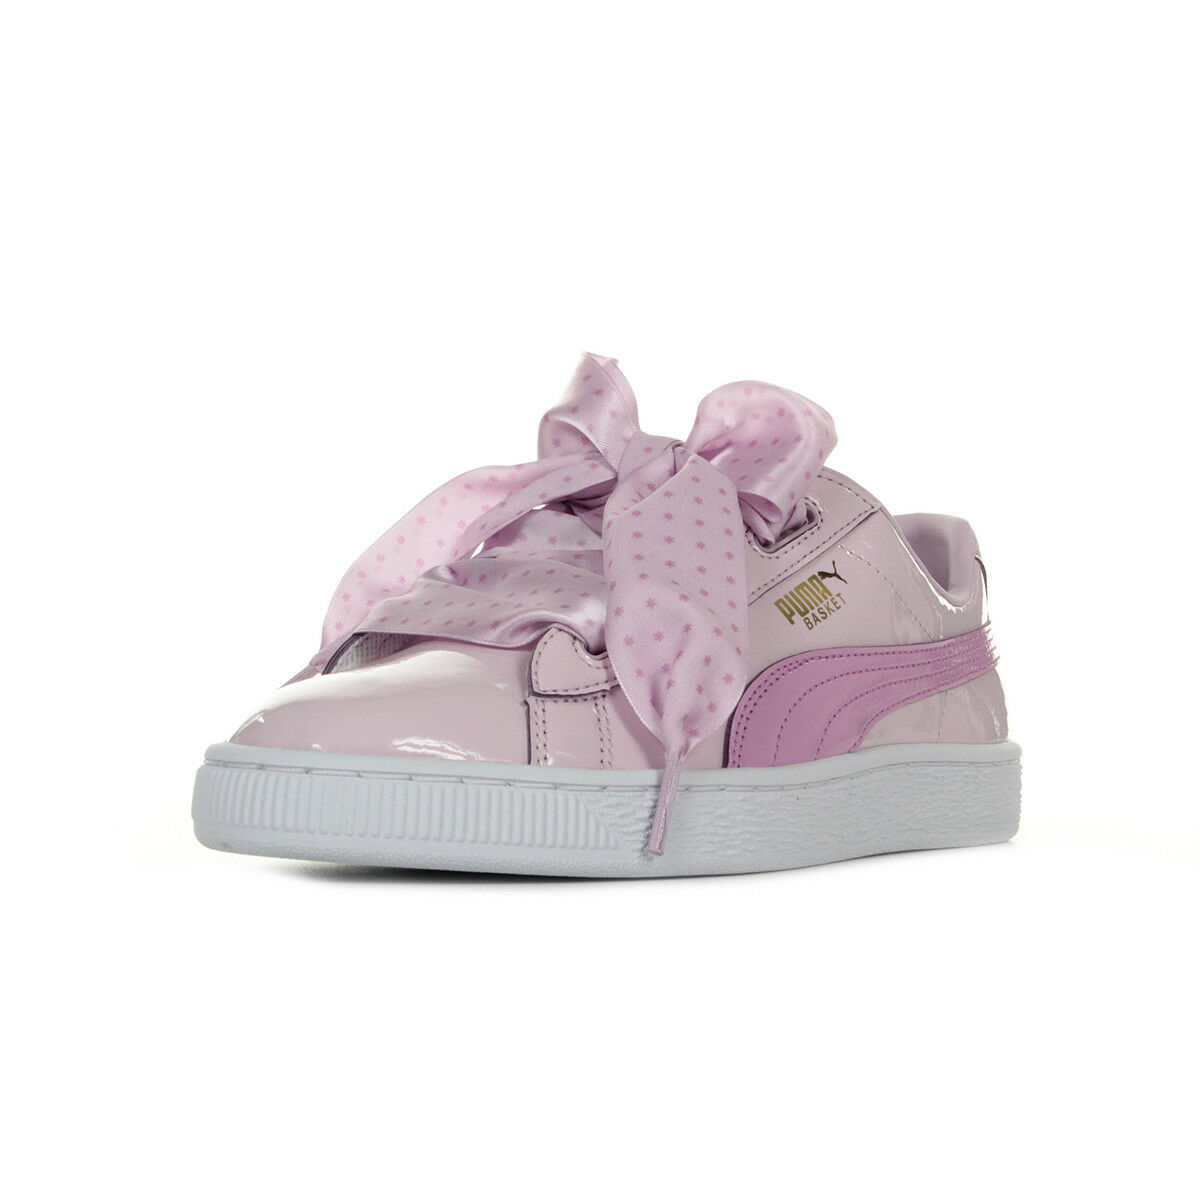 Chaussures Baskets Puma femme Basket Heart Stars Jr taille Rose Synthétique